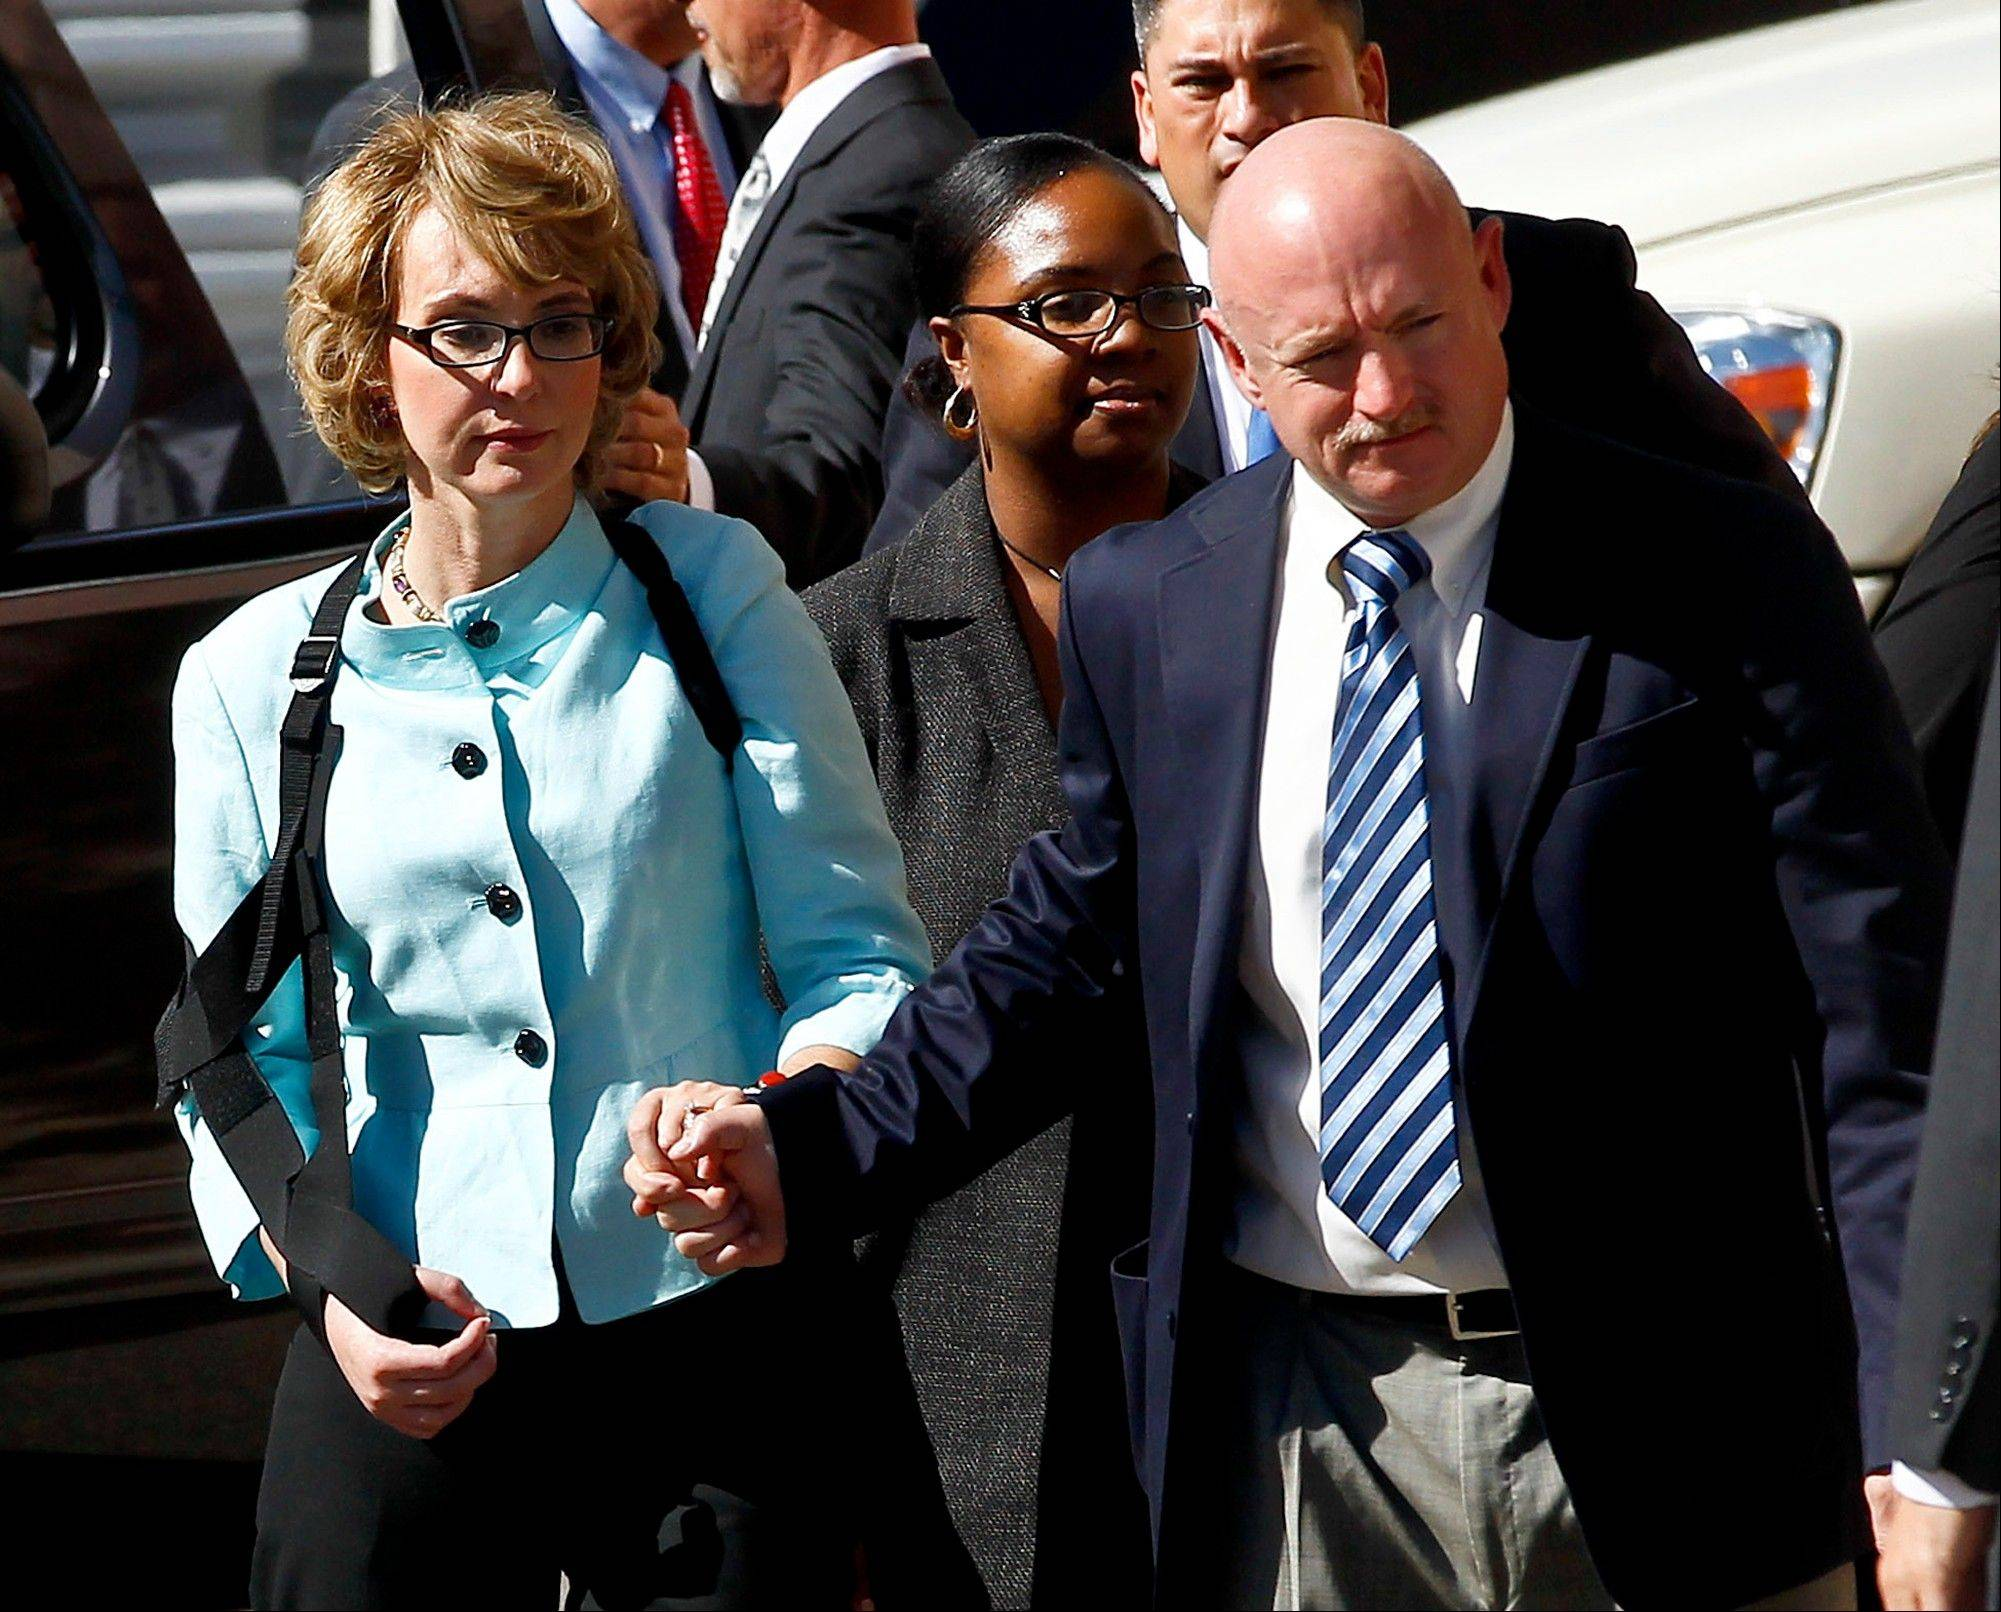 Former Democratic Rep. Gabrielle Giffords, left, and her husband Mark Kelly leave after the sentencing of Jared Loughner on Thursday in Tucson, Ariz.